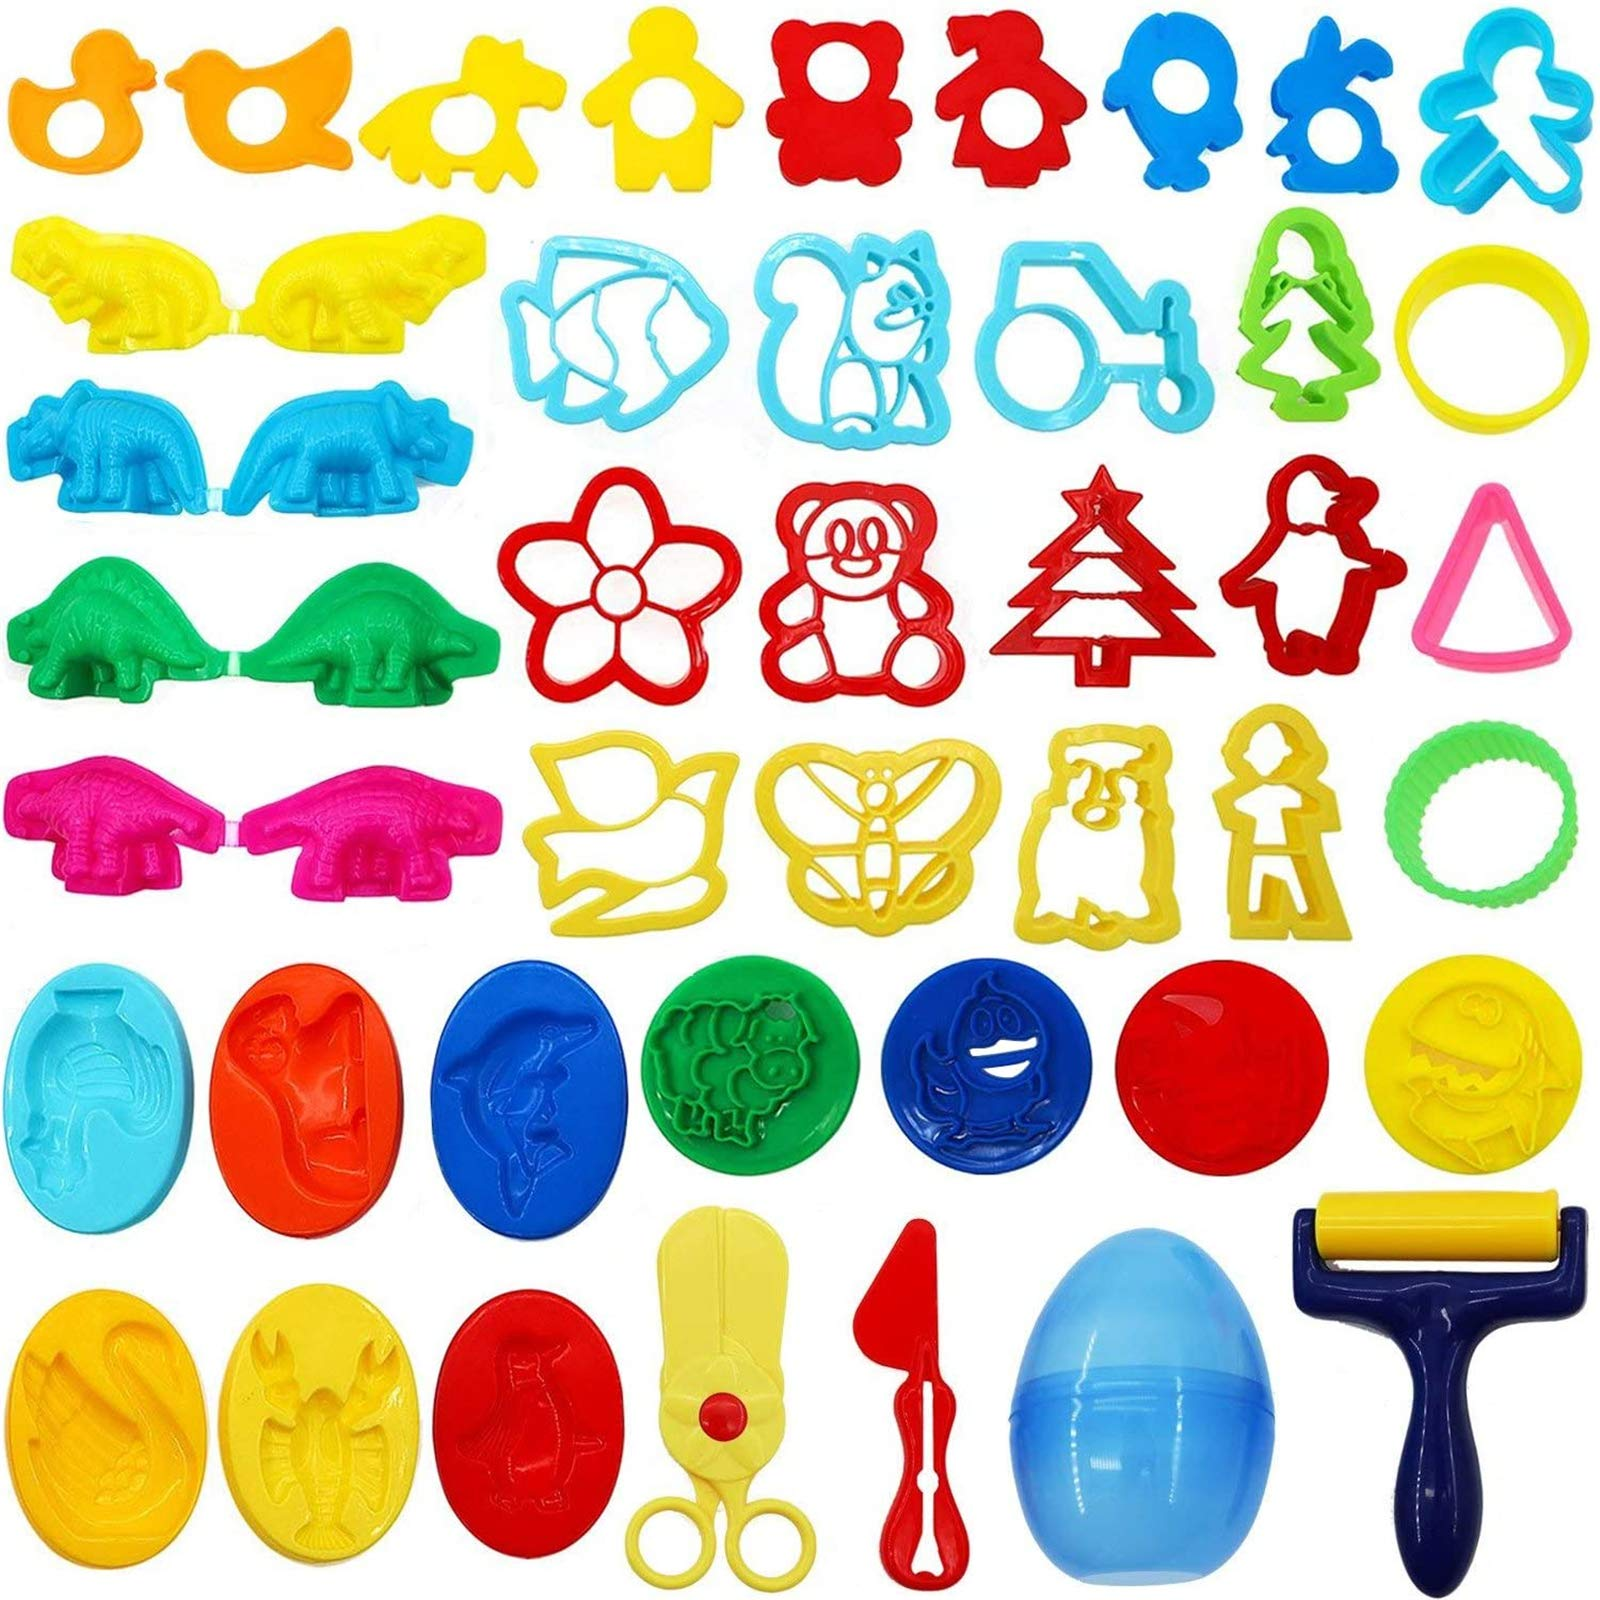 HEHALI 41pcs Play Dough Tools Playset Clay Dough Accessories Includes Various Plastic Dough Molds Cutters for Kids